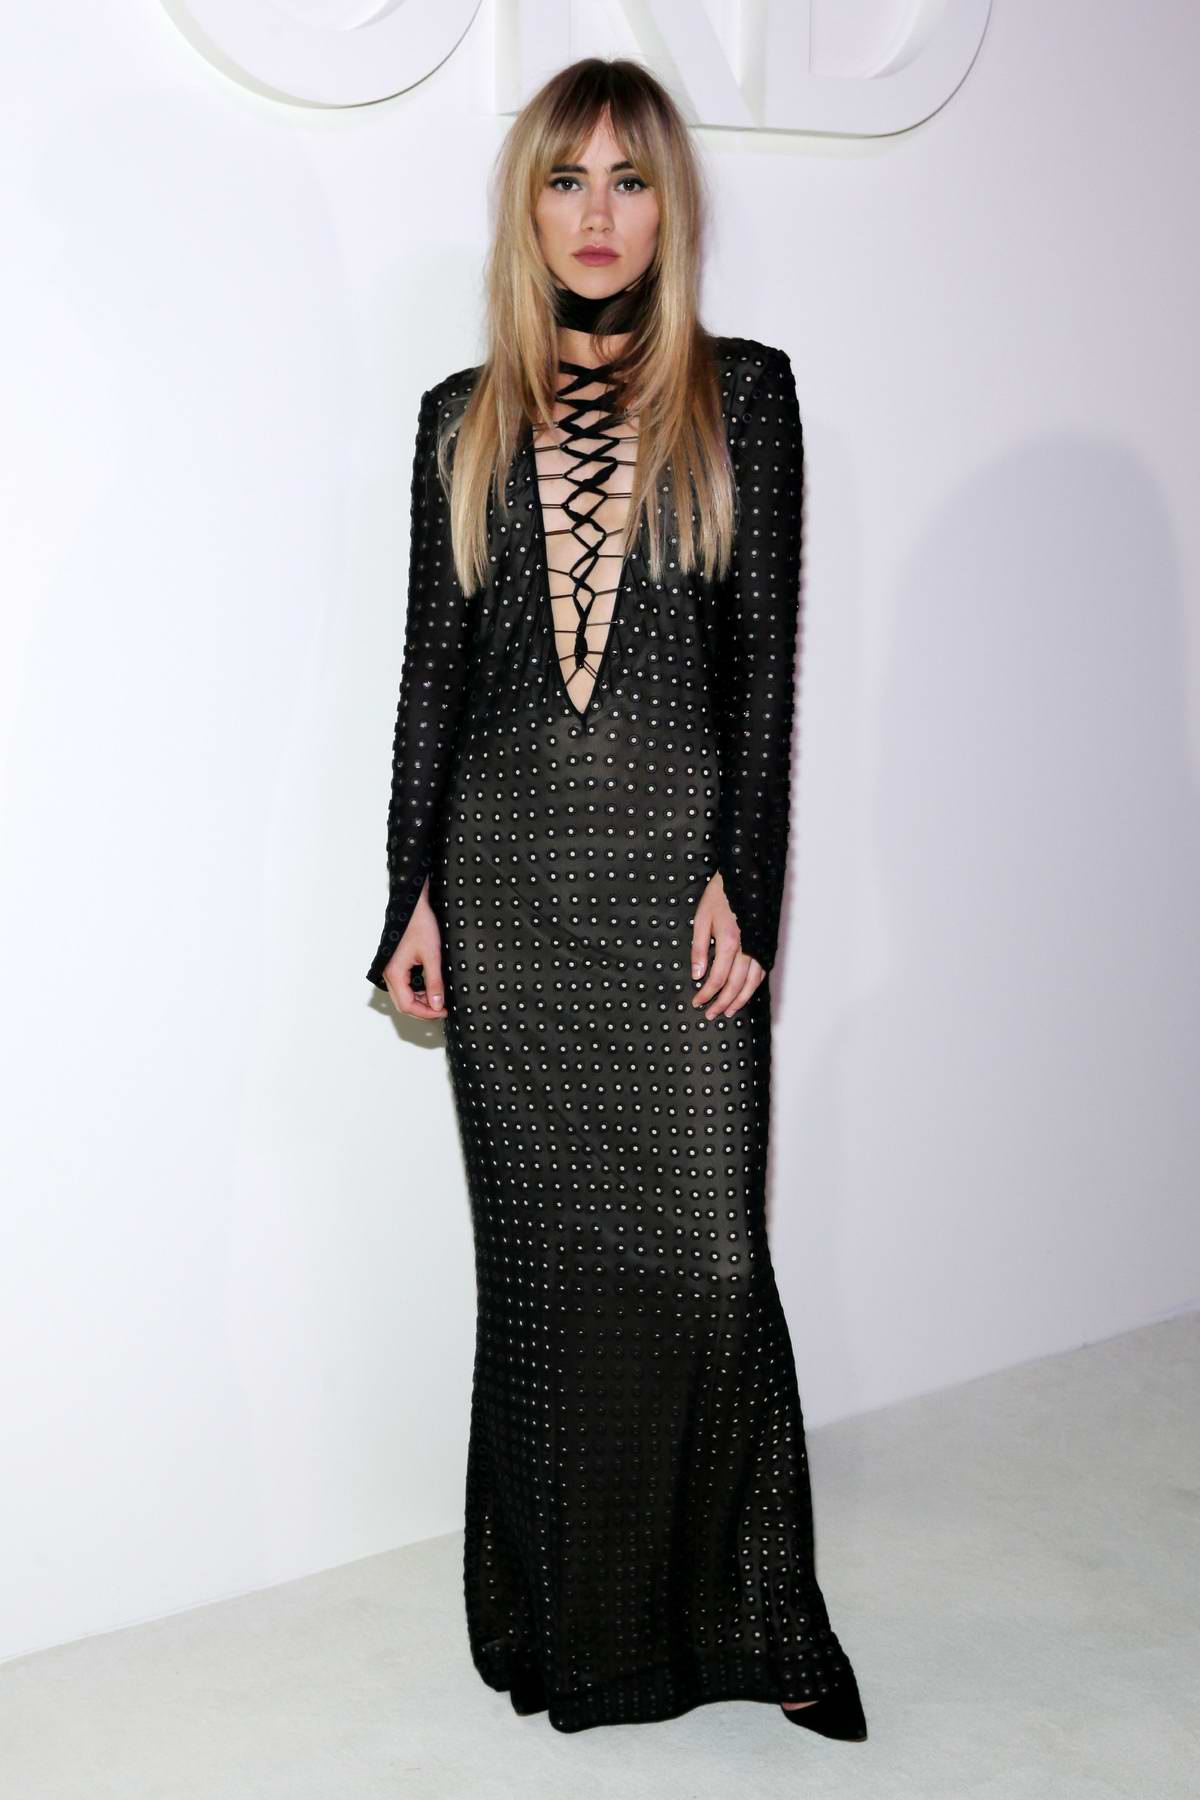 Suki Waterhouse attends Tom Ford Spring/Summer 2019 during New York Fashion Week in New York City